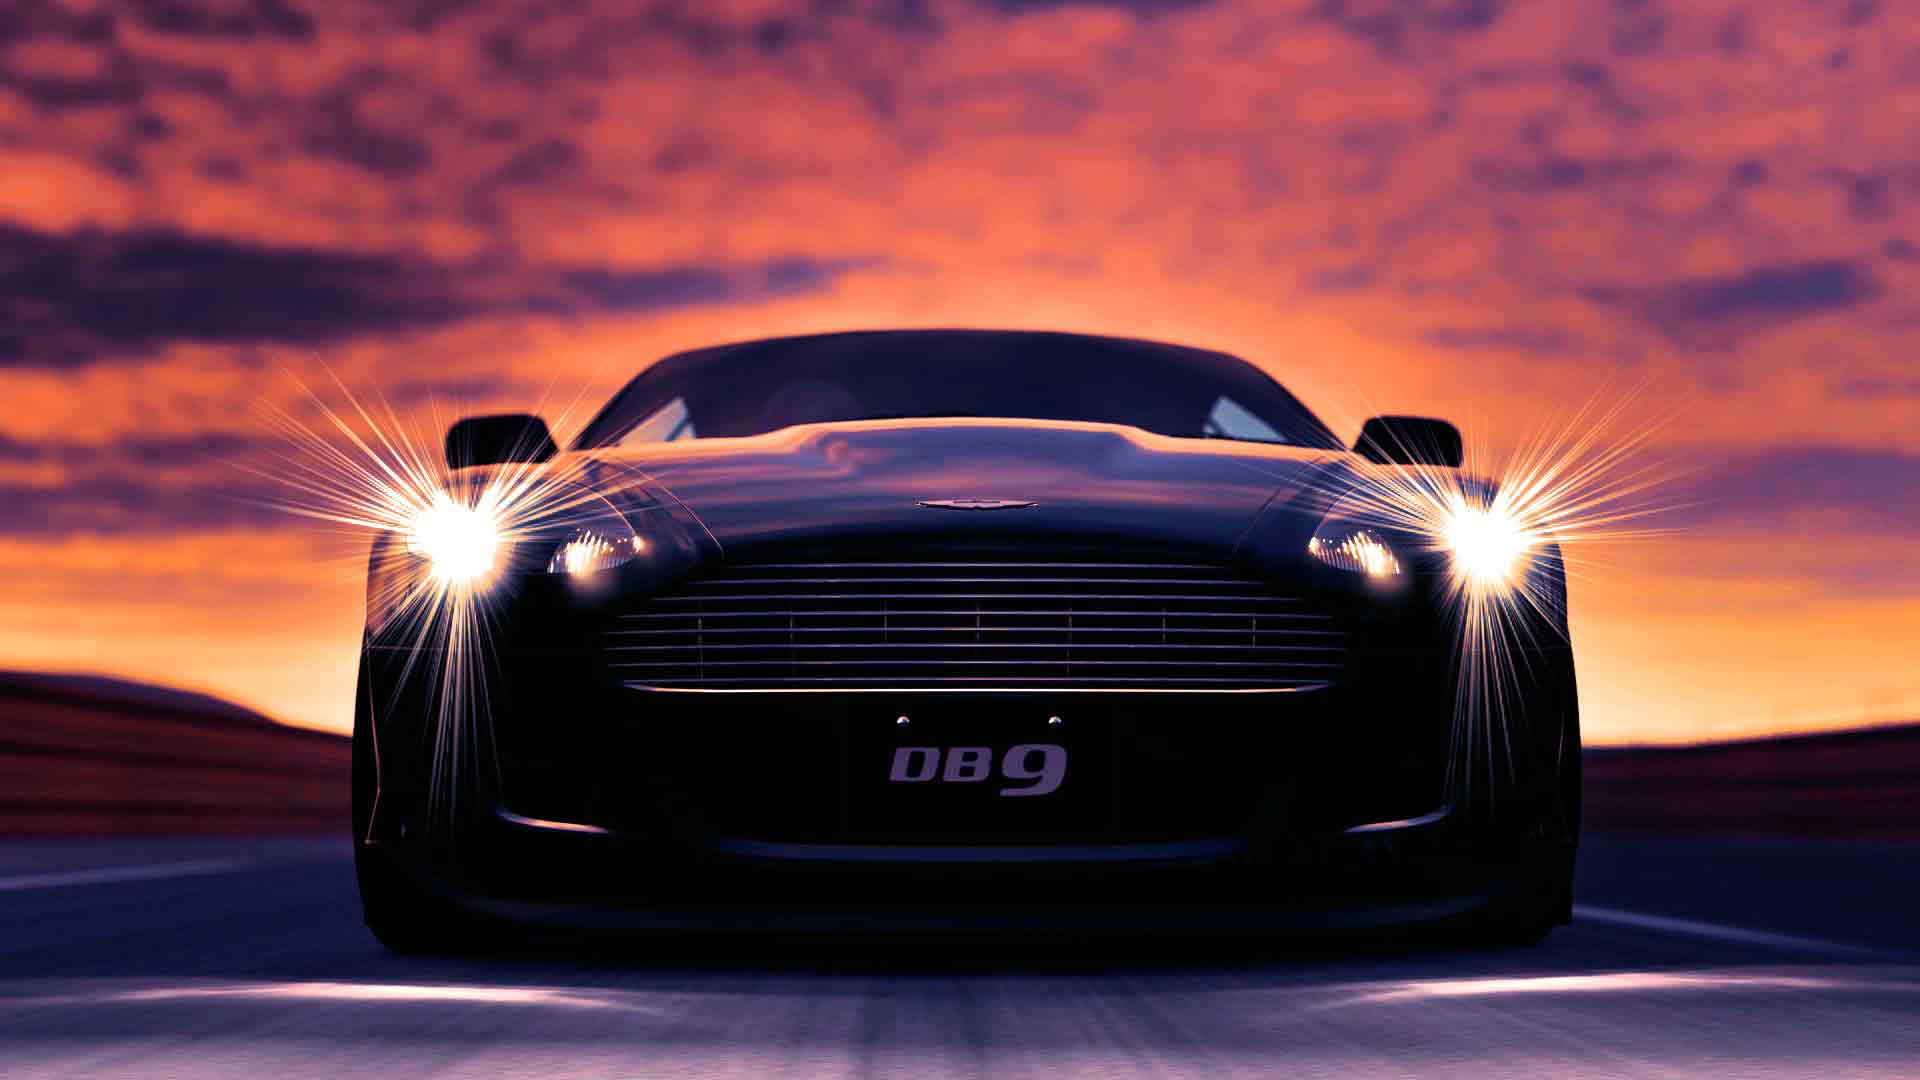 Aston Martin Hd Wallpaper Awesome Aston Martin Widescreen Hd